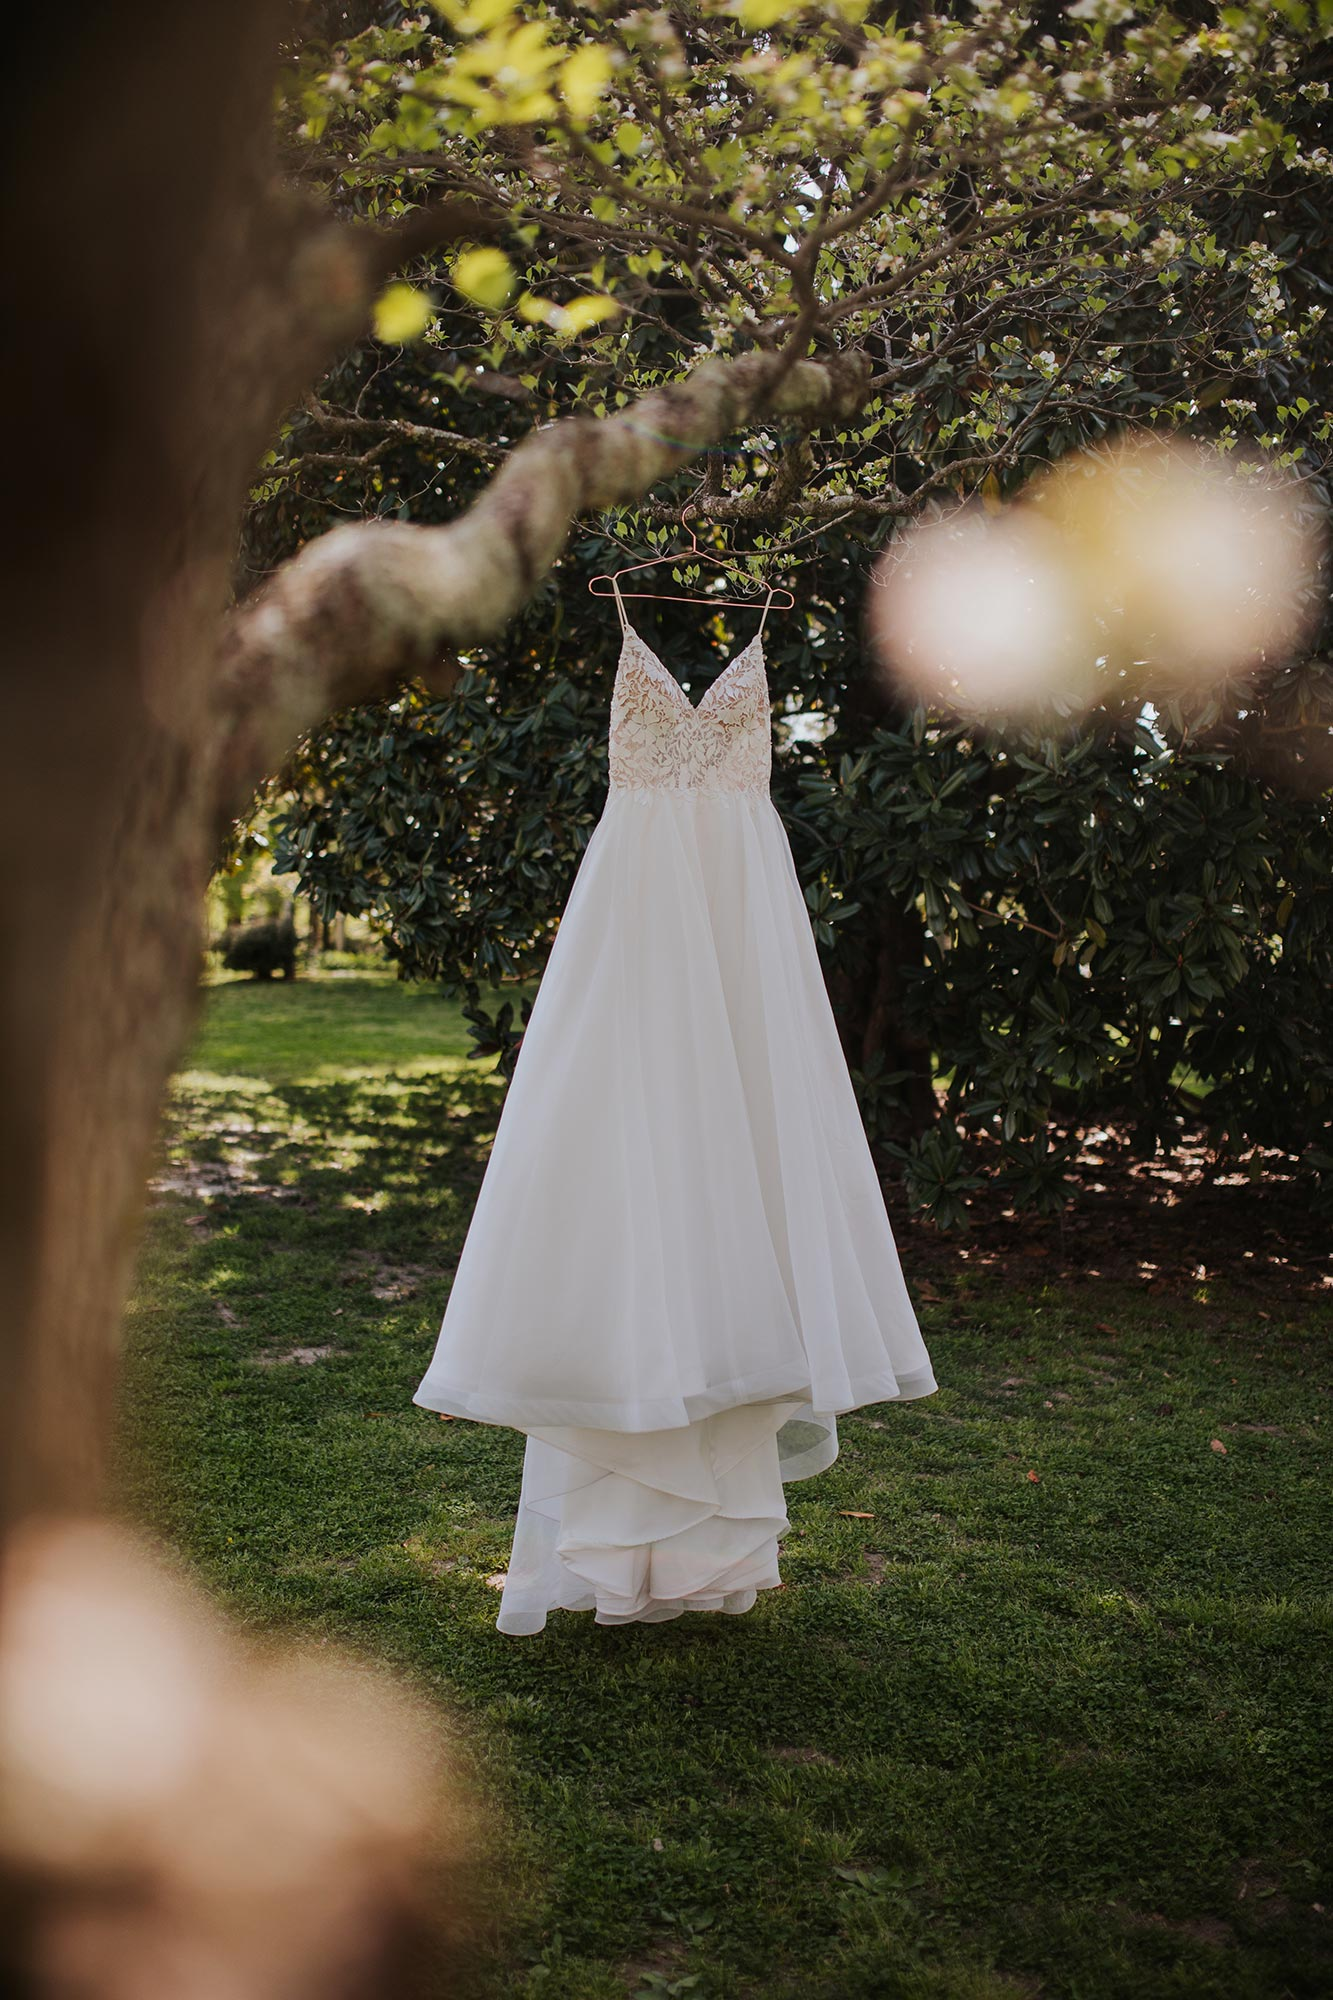 Lush wedding inspiration at Seven Springs VA with wedding dress hanging from a tree Carly Romeo & Co.